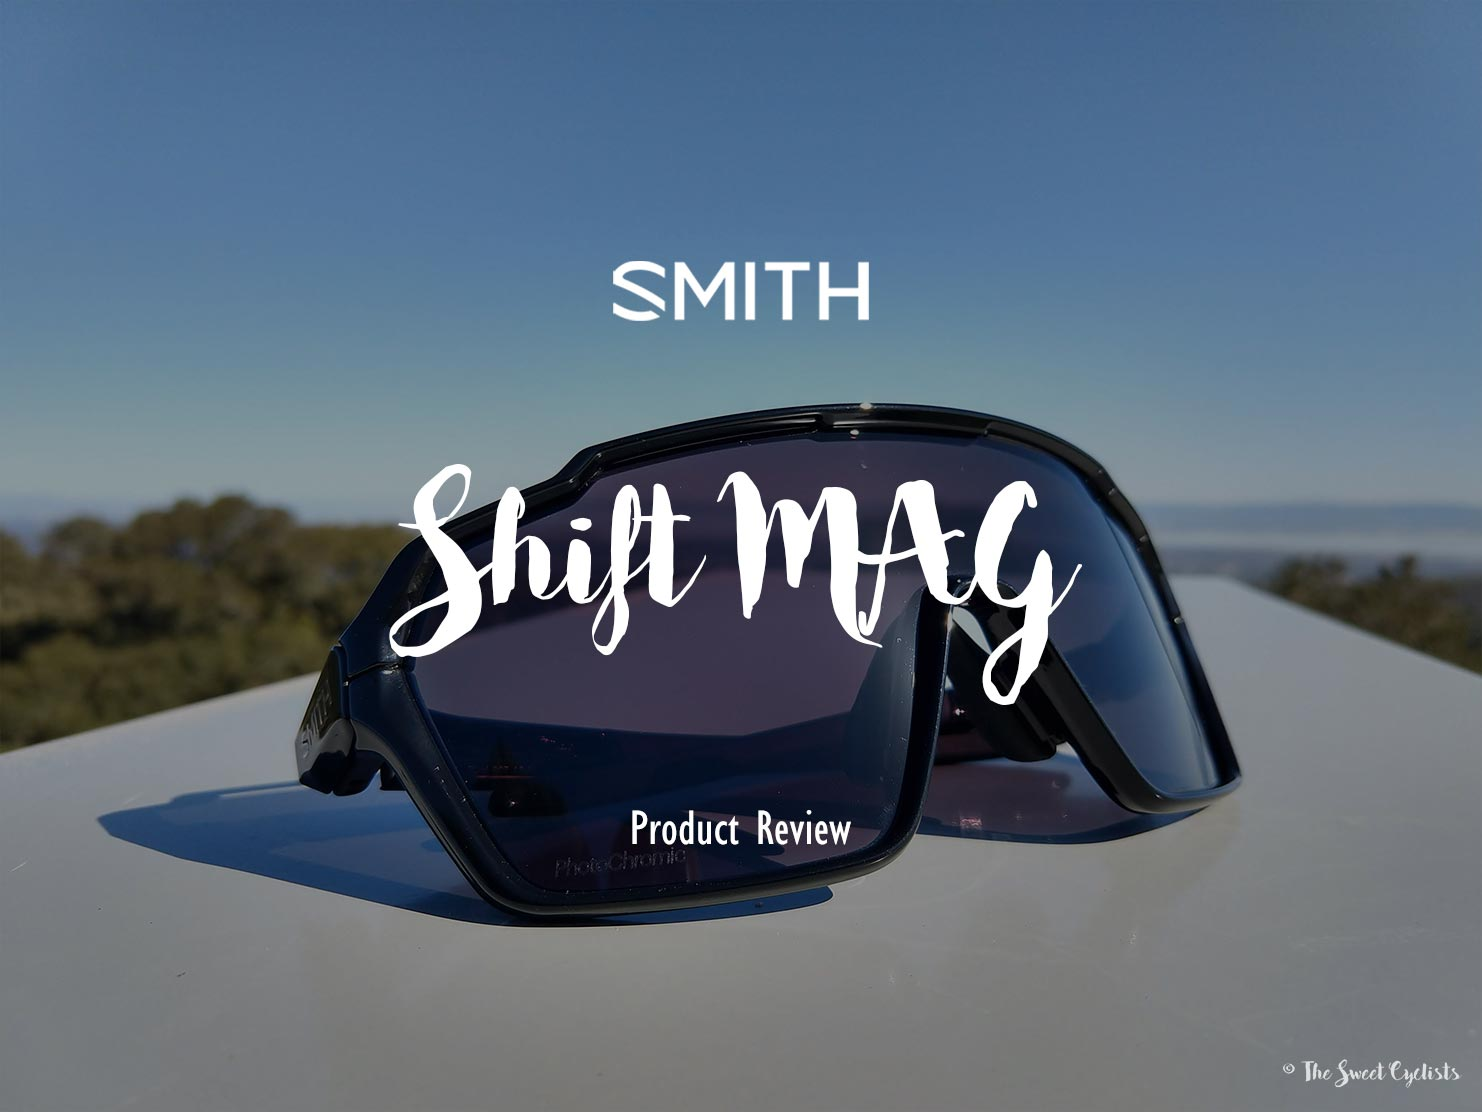 Smith makes lens changes easy with magnets